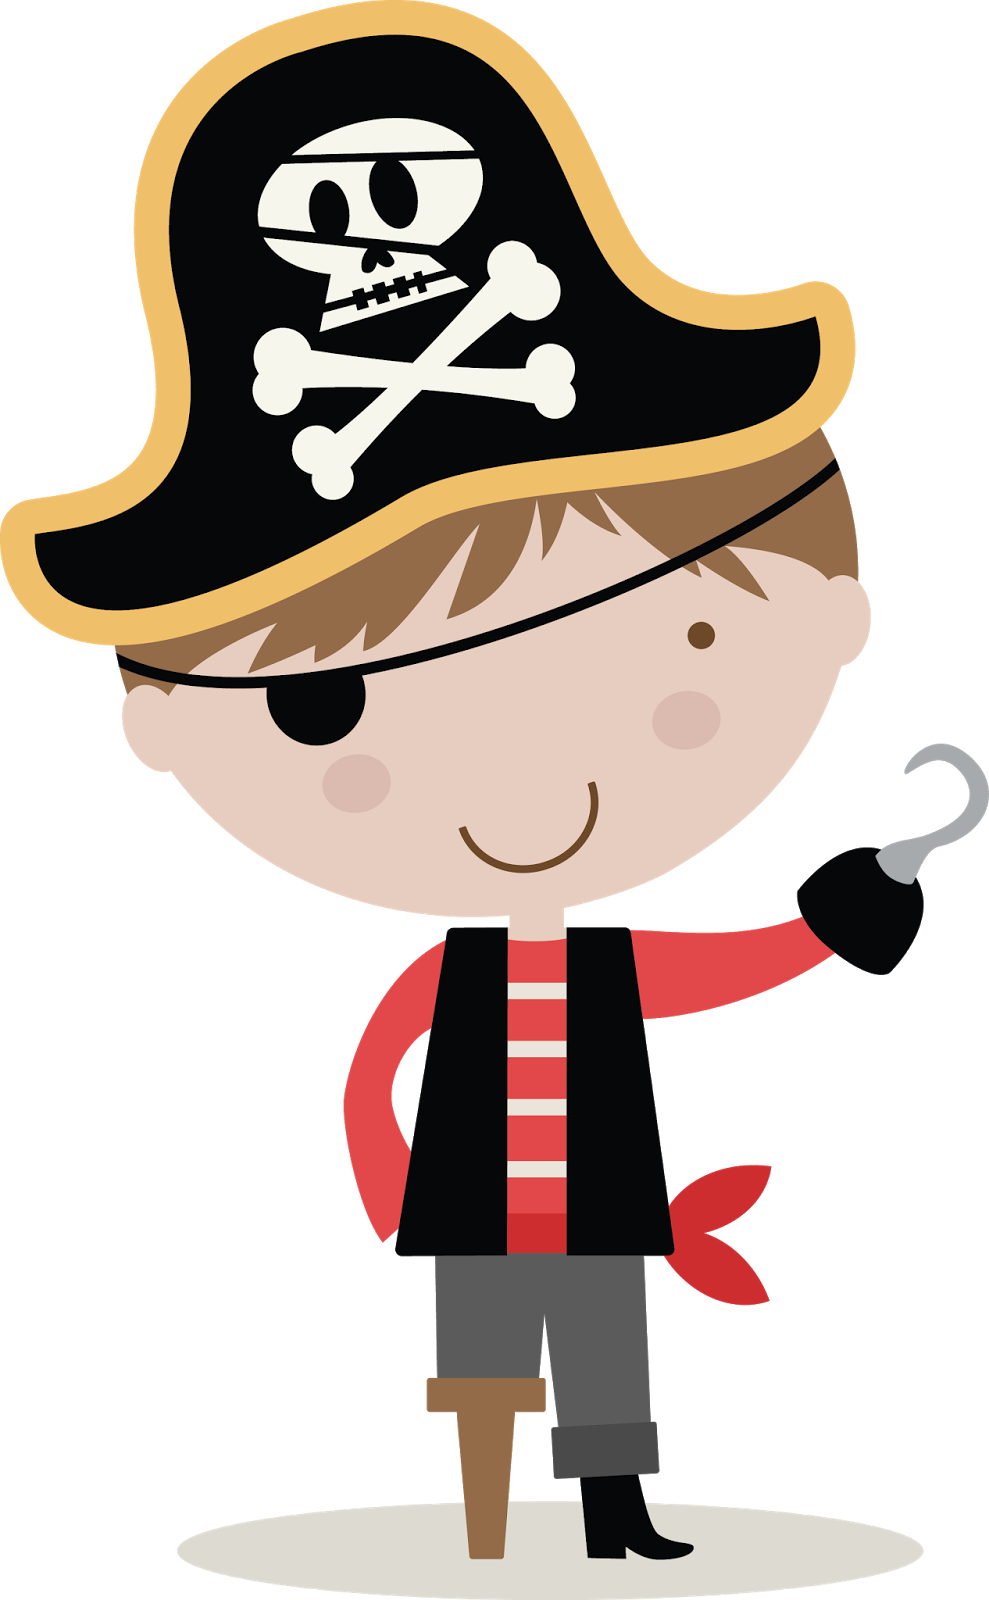 Pirate Designs Png image #35011